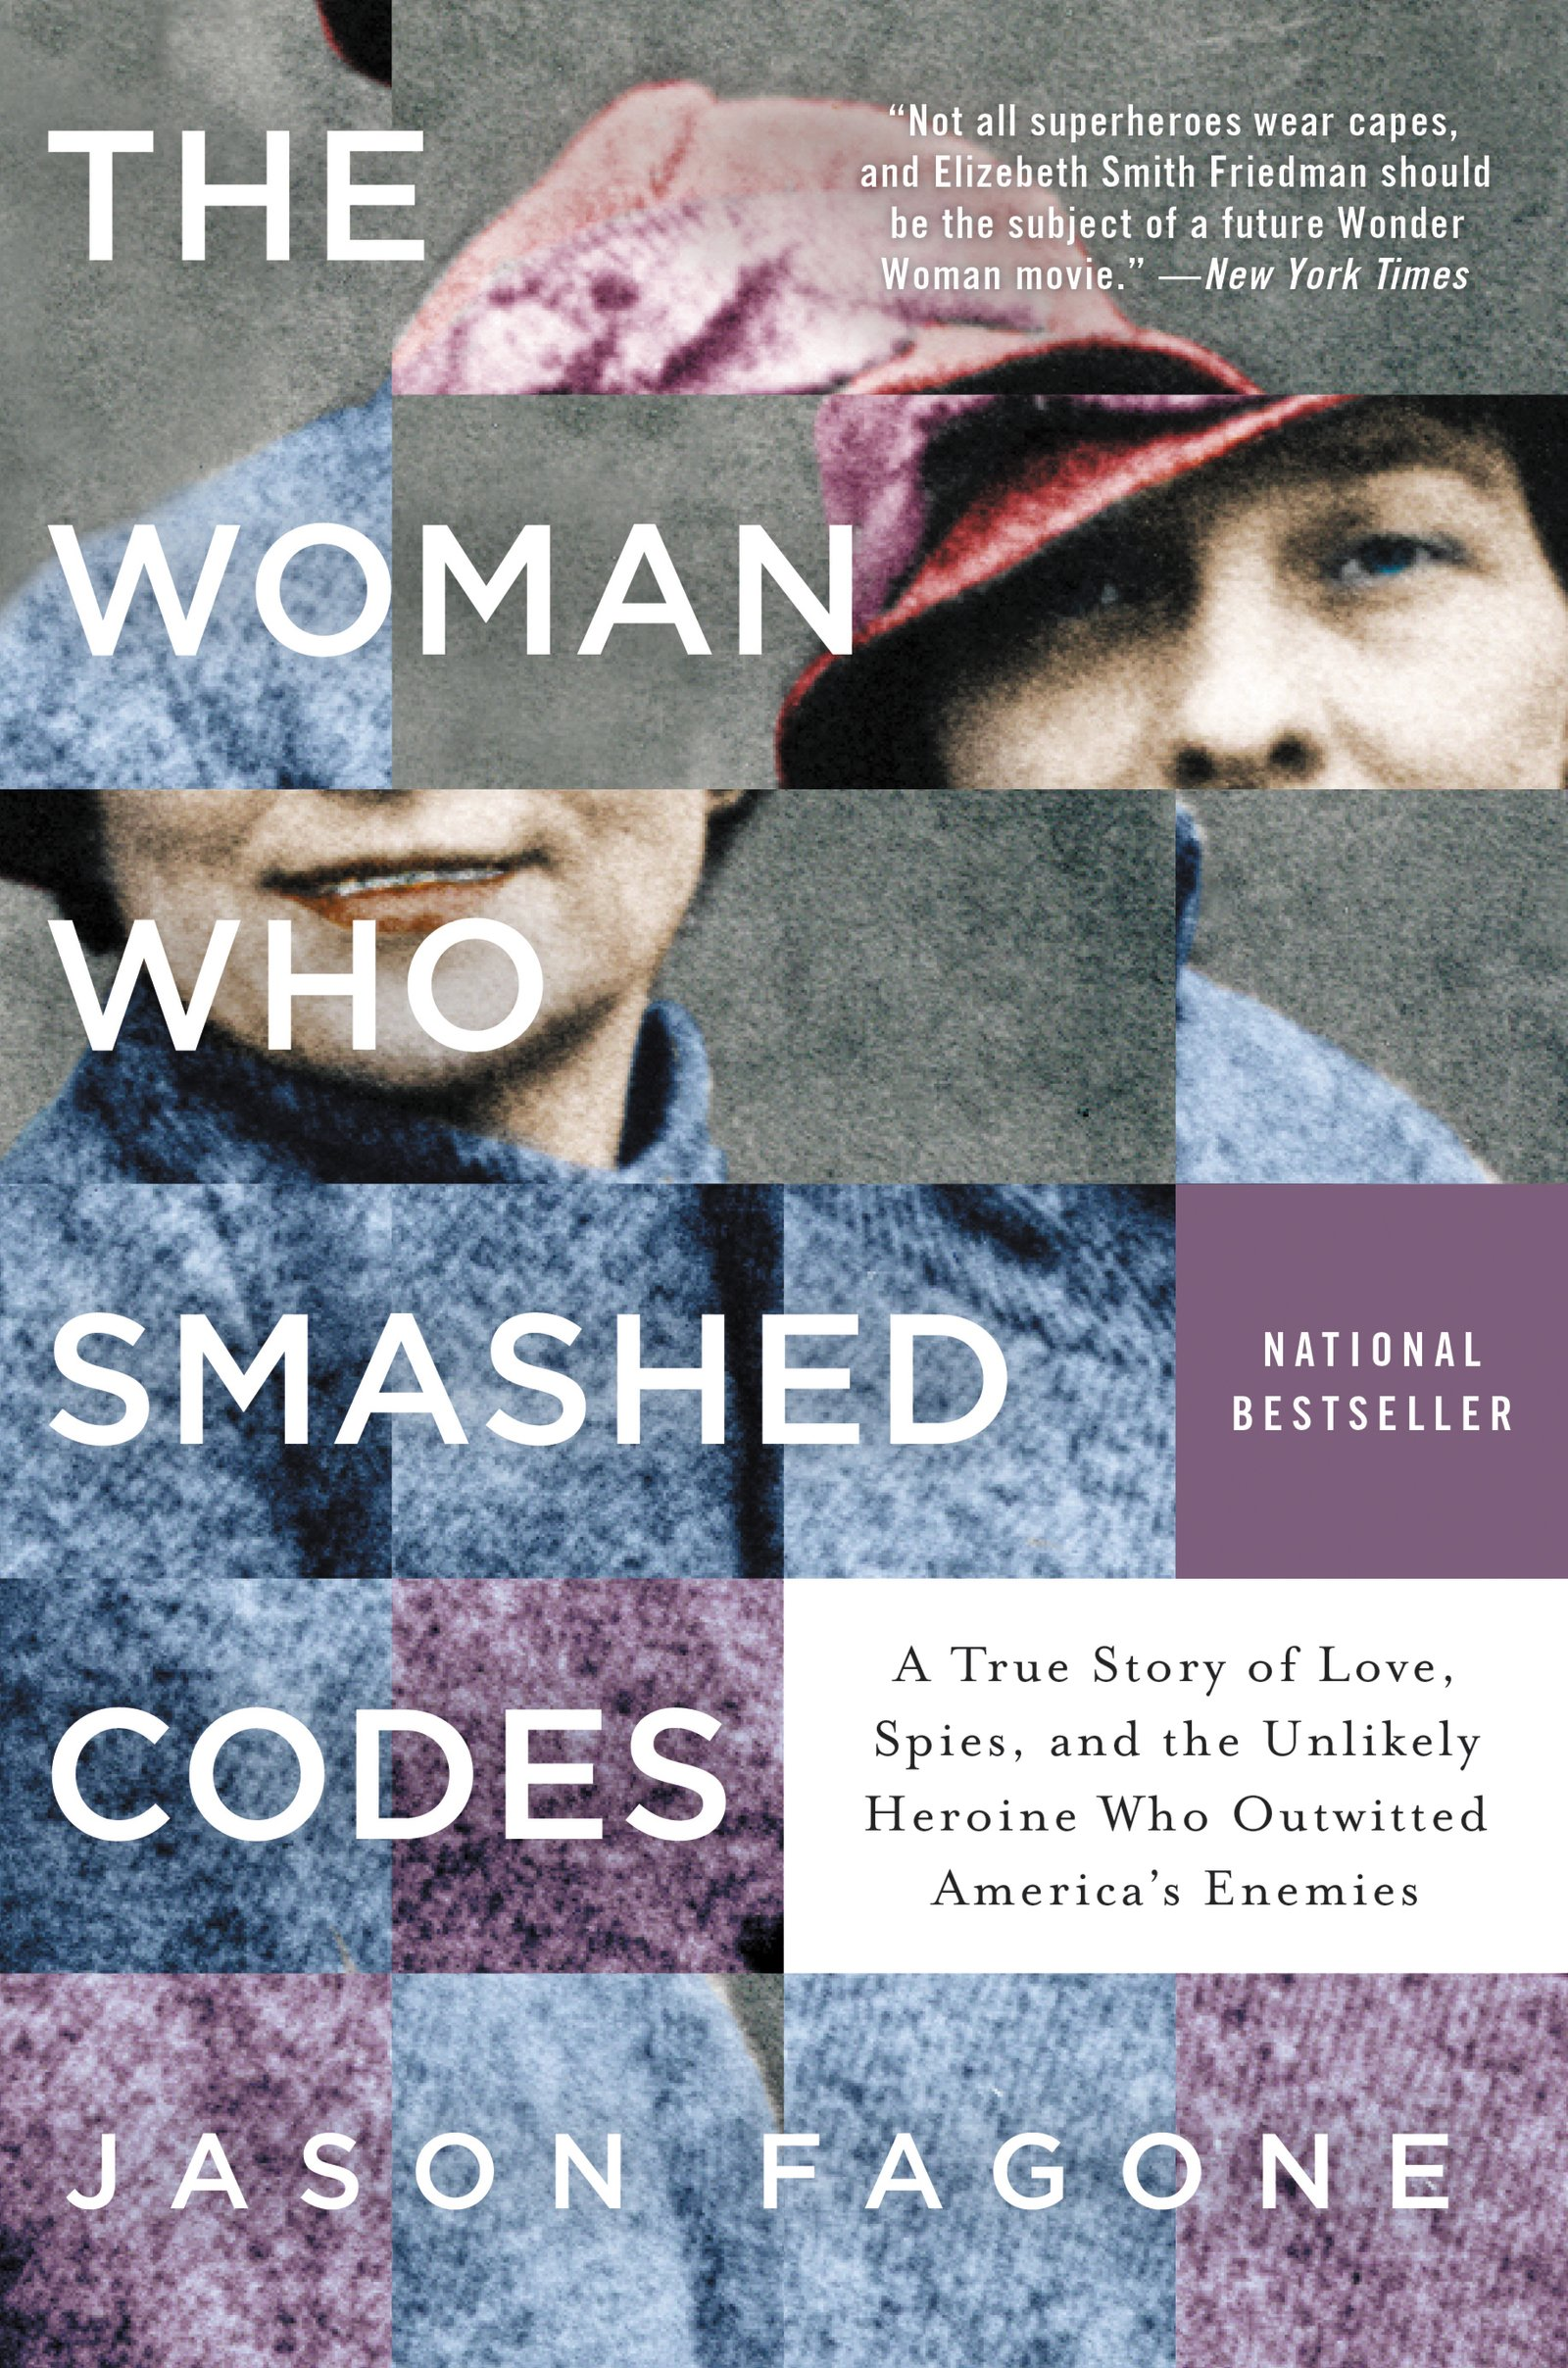 Image result for the woman who smashed codes